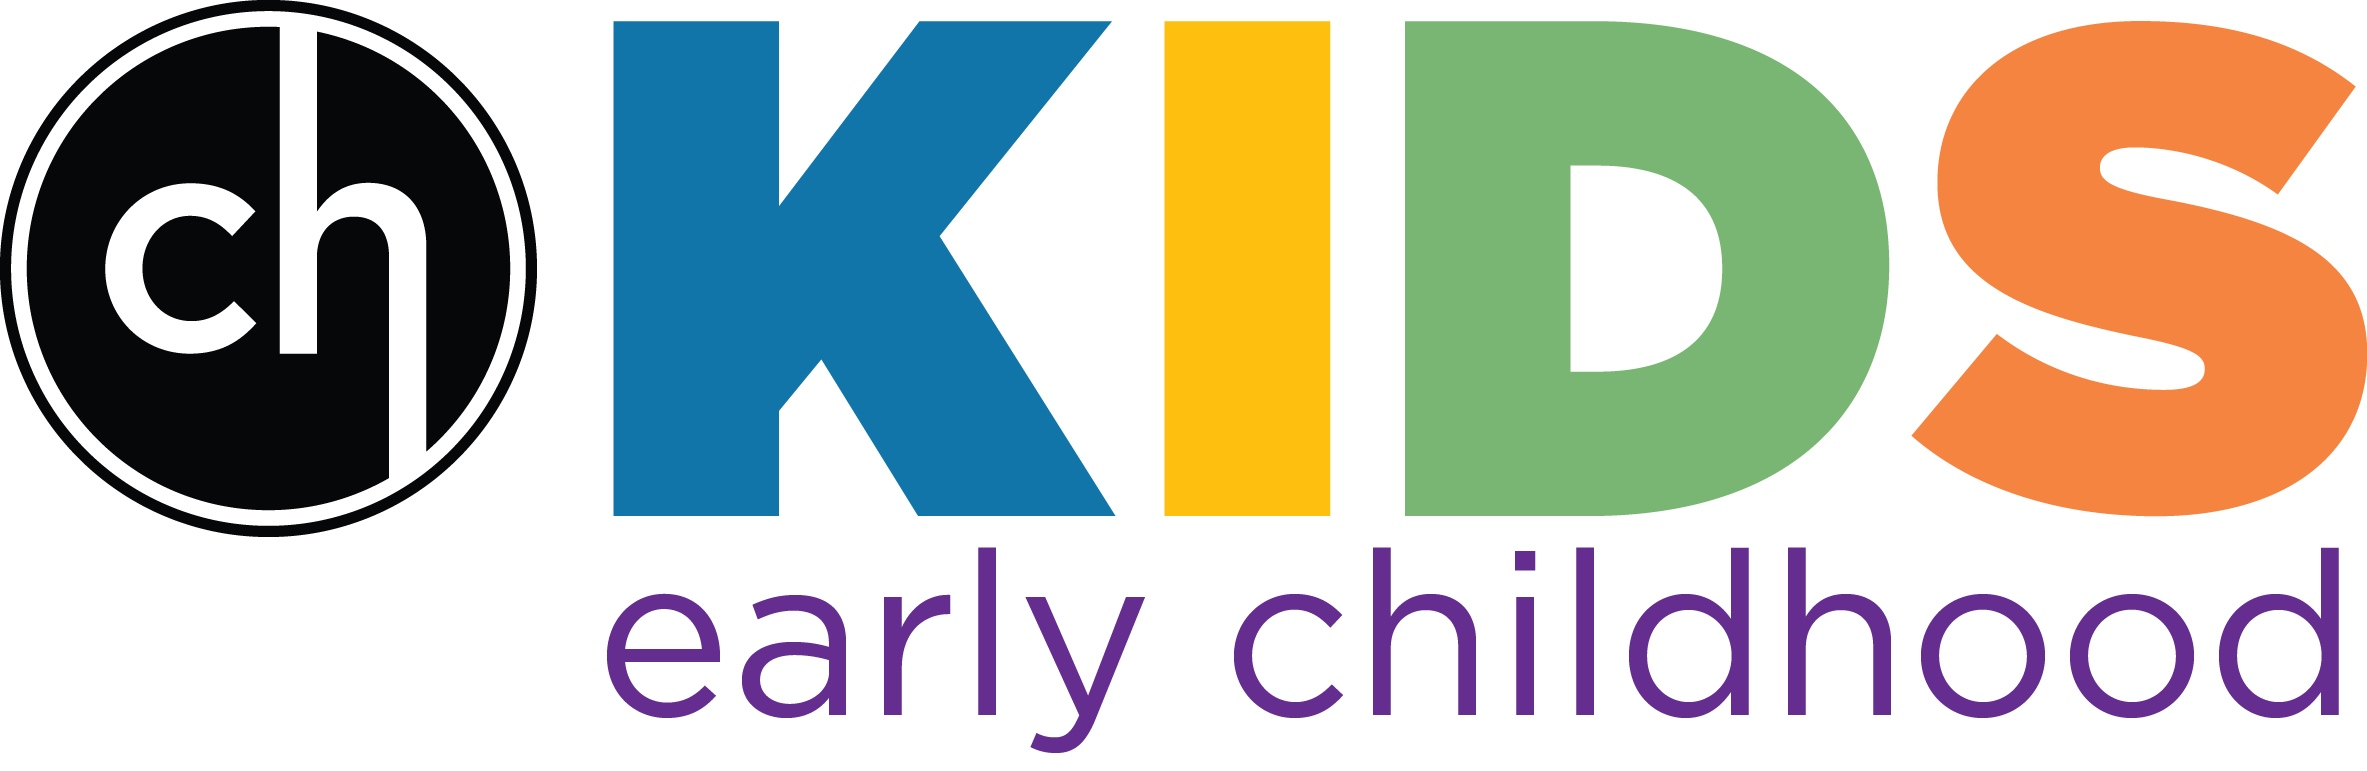 CH Kids Logo Early Childhood FINAL Color.png